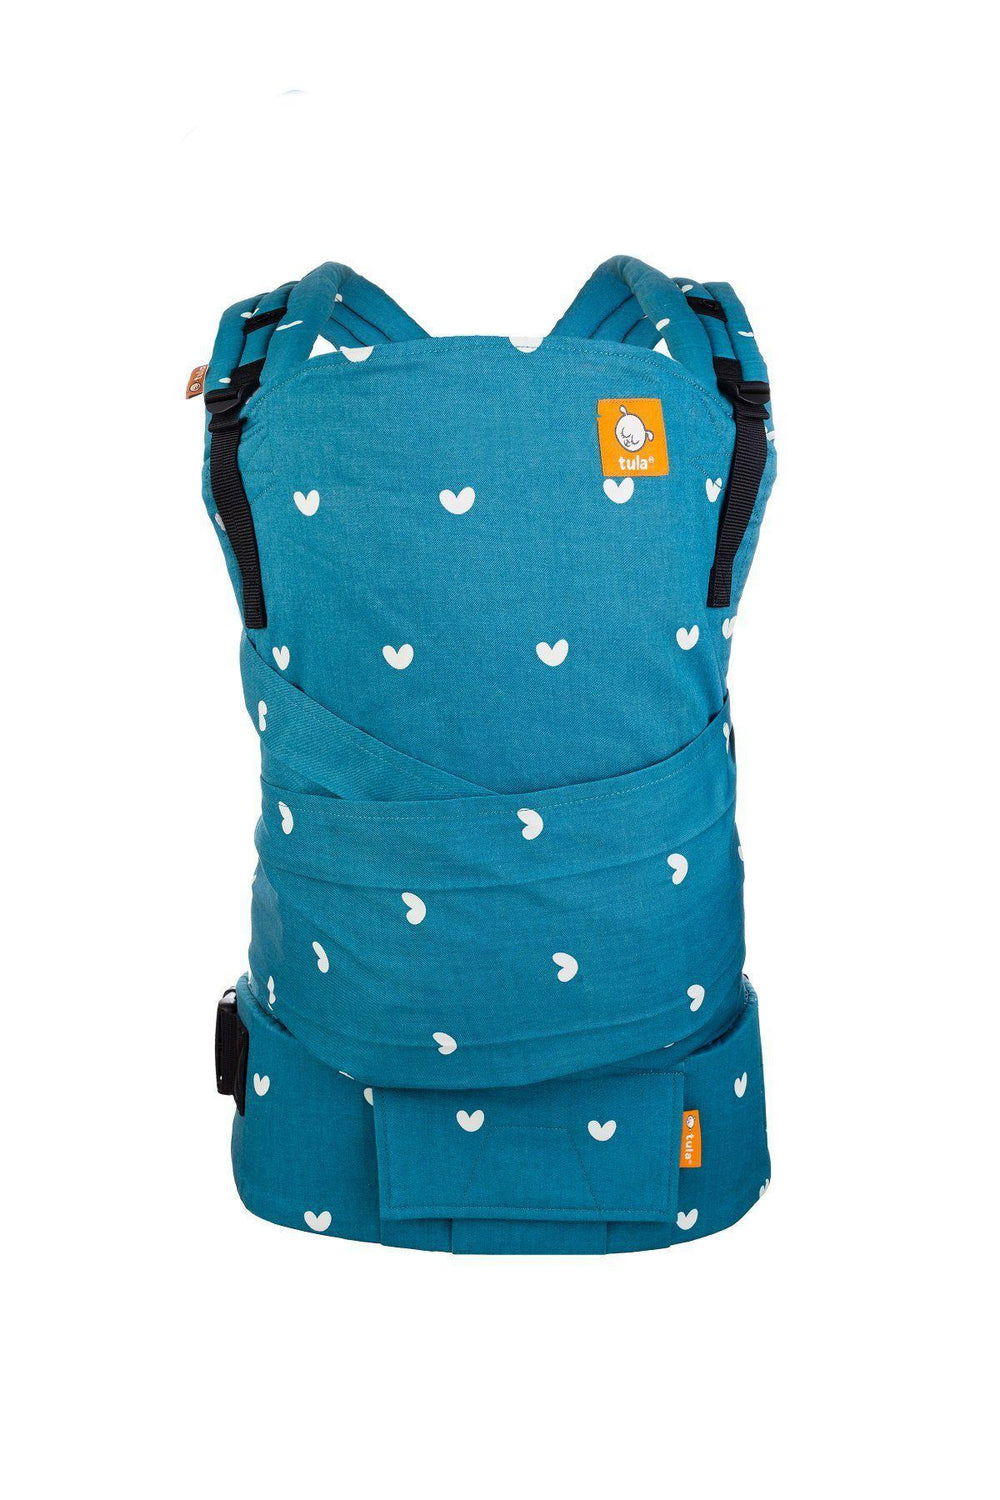 Playdate - Tula Half Buckle Baby Carrier-Half Buckle Baby Carrier-Baby Tula- Little Zen One US Babywearing baby carriers